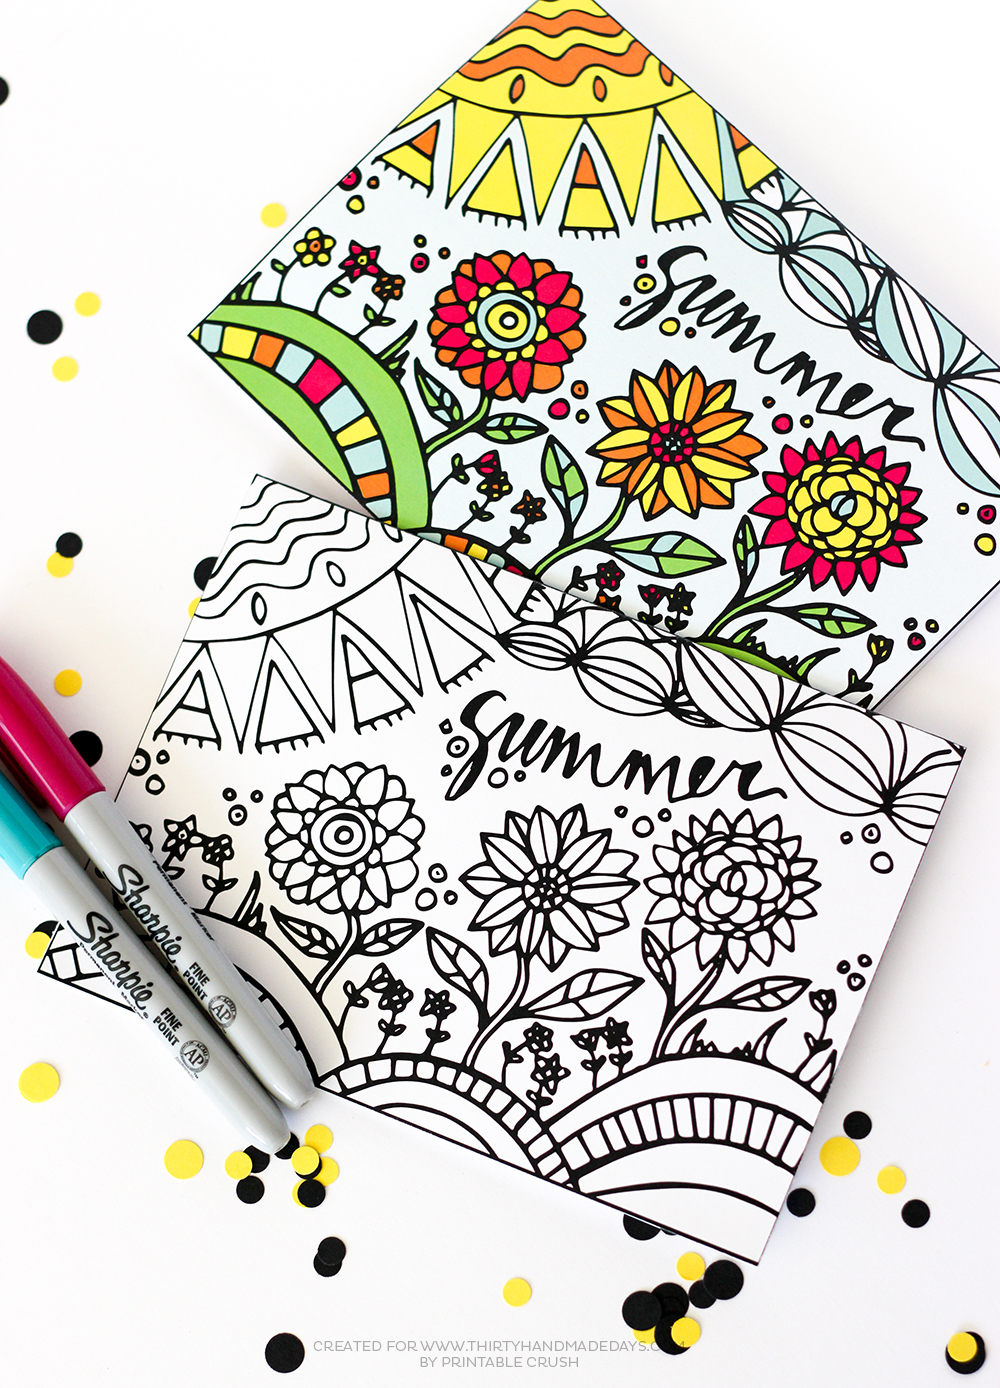 photo relating to Printable Coloring Cards identified as Printable Summertime Coloring Card - 30 Home made Times